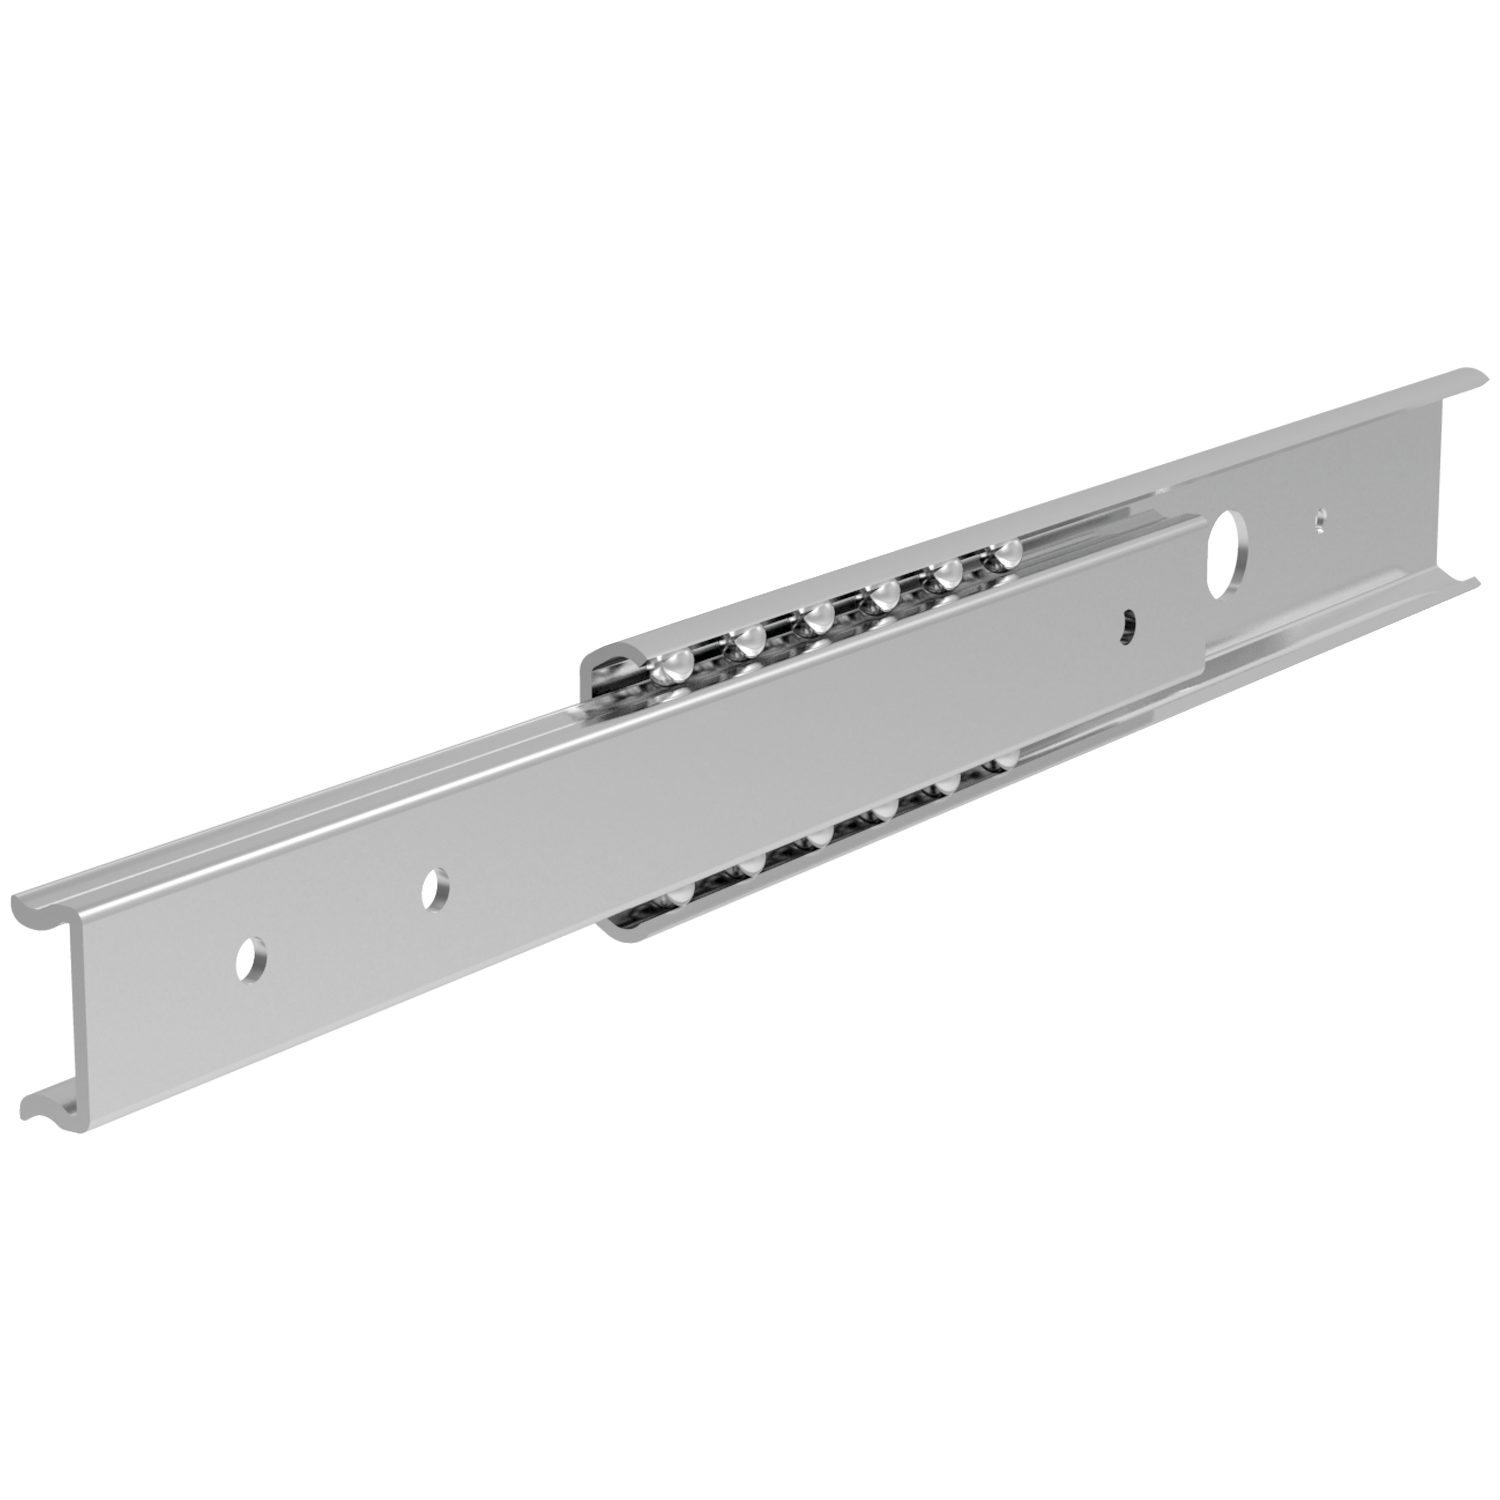 L2026 - Touch-to-Open Drawer Slides